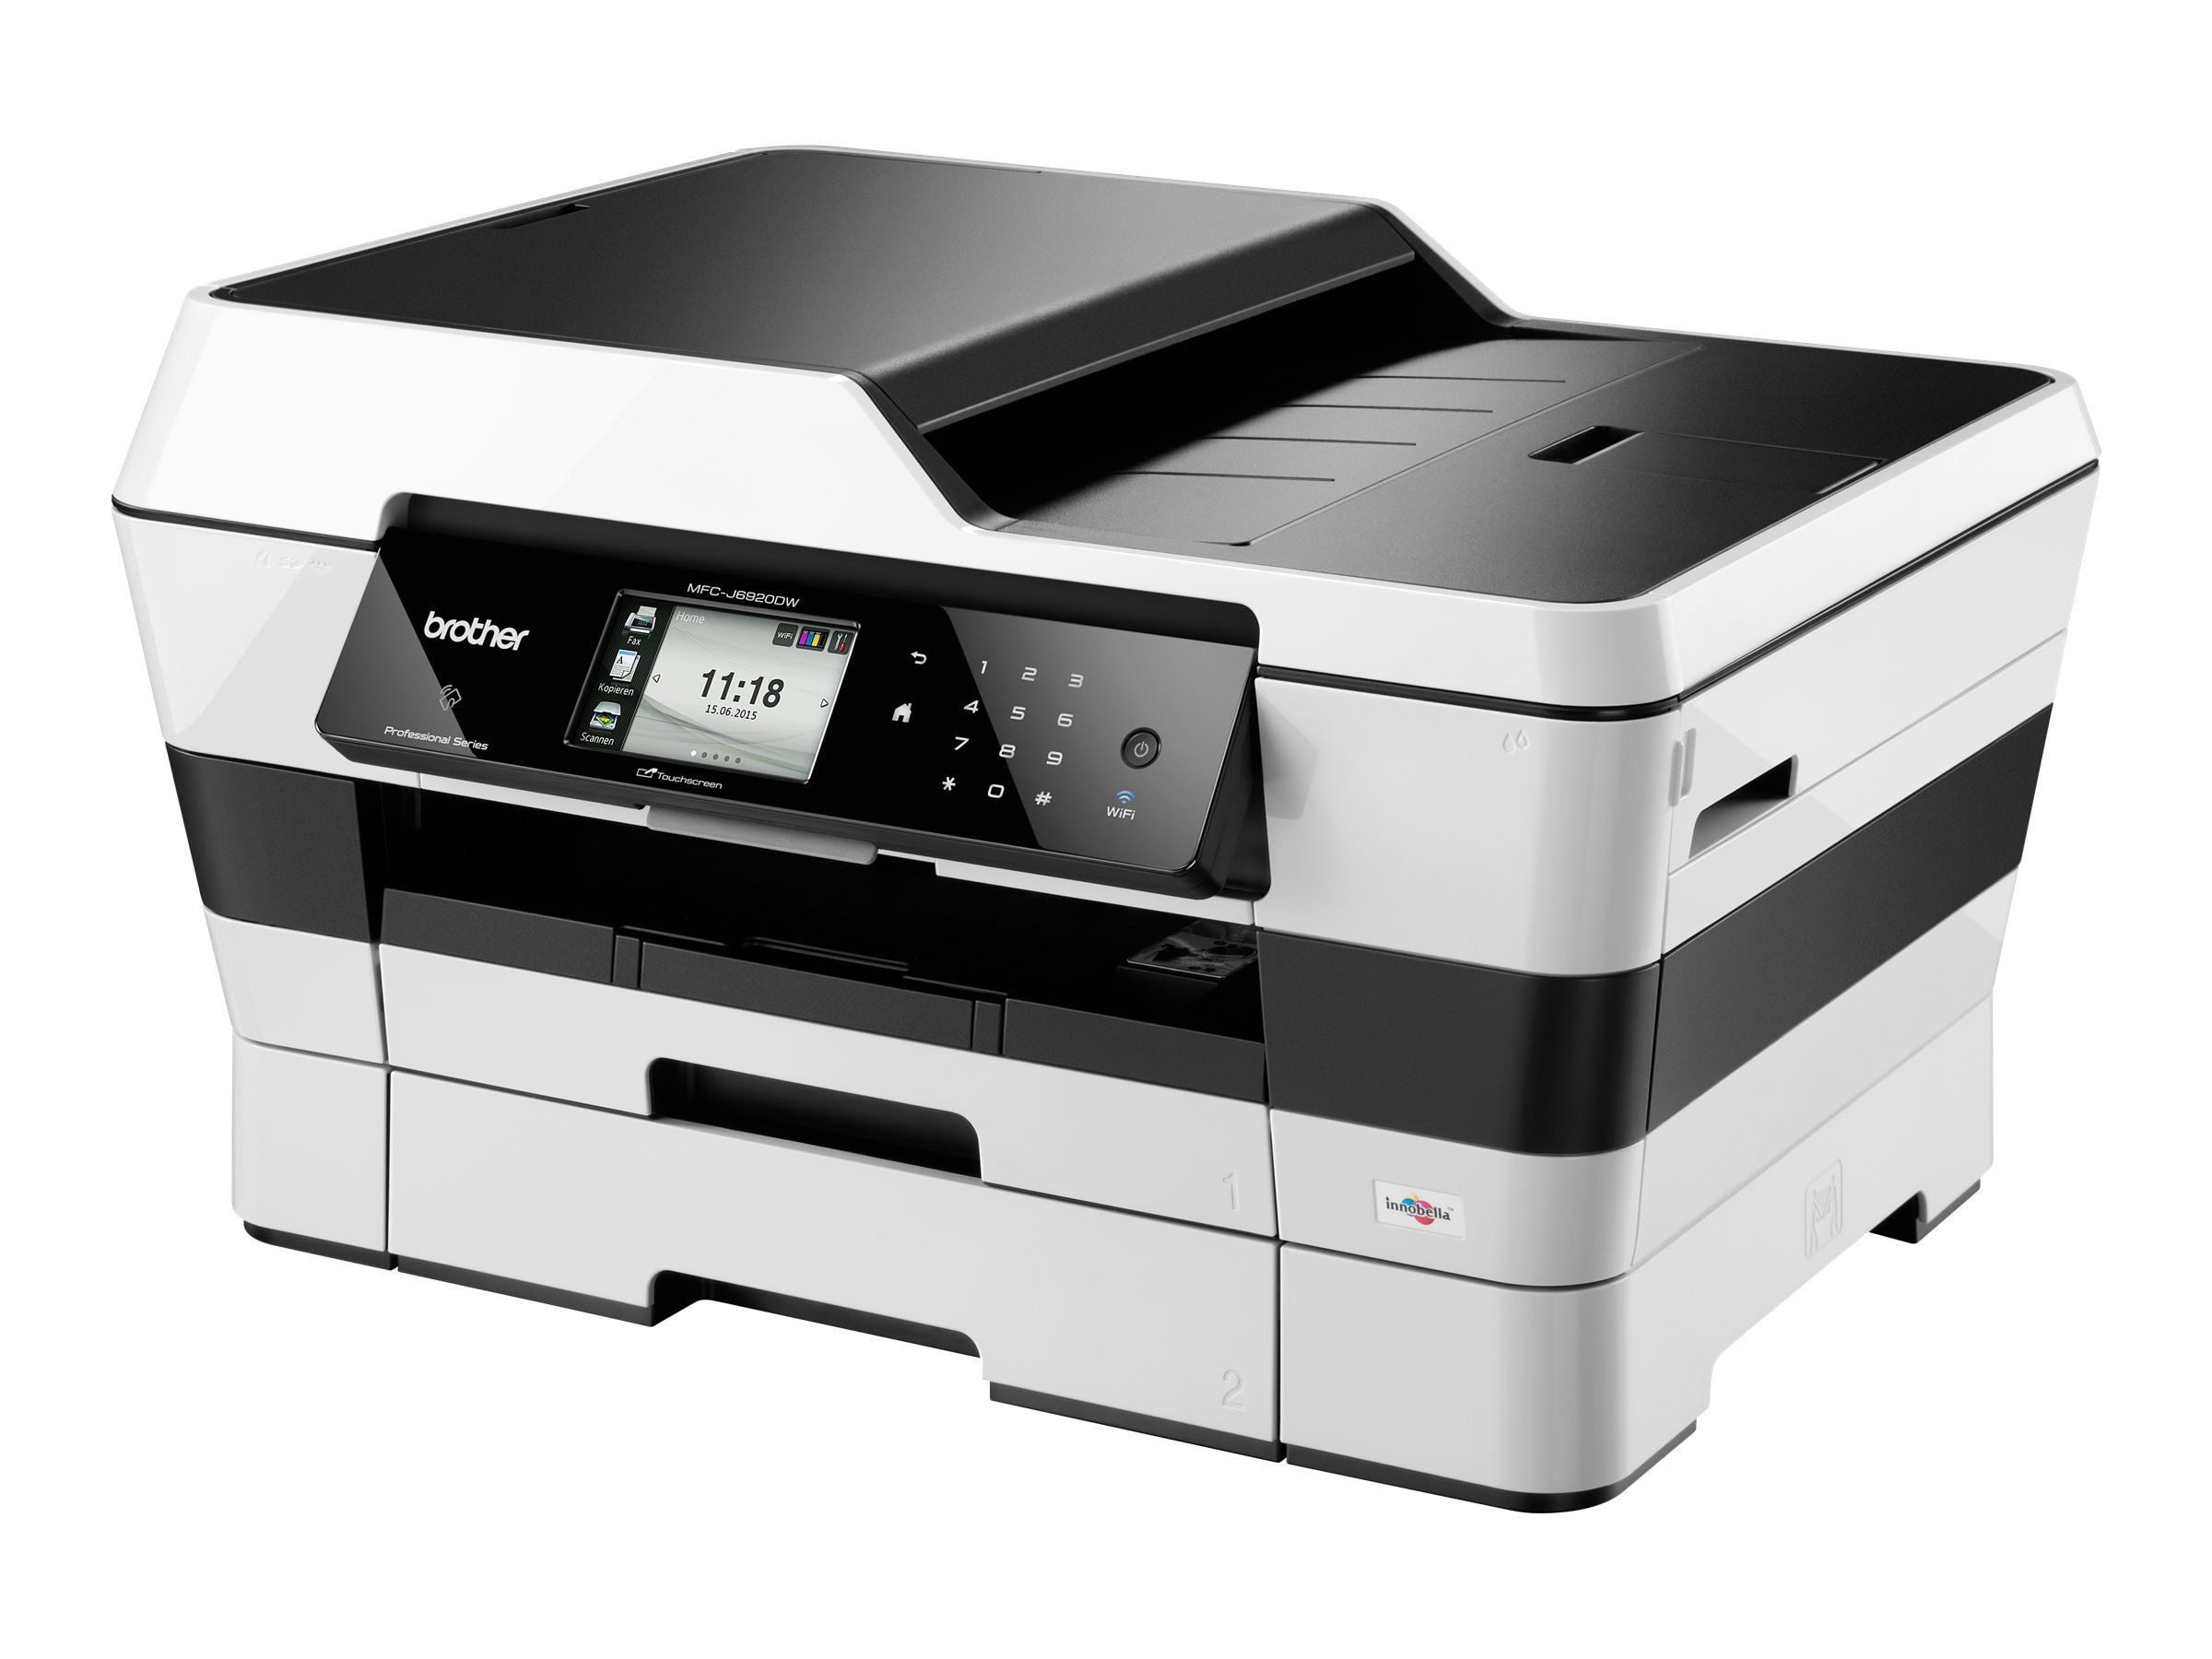 Brother MFC-J6920DW Inkjet All-In-One, MFC-J6920DW, 16196095, MultiFunction - Ink-Jet